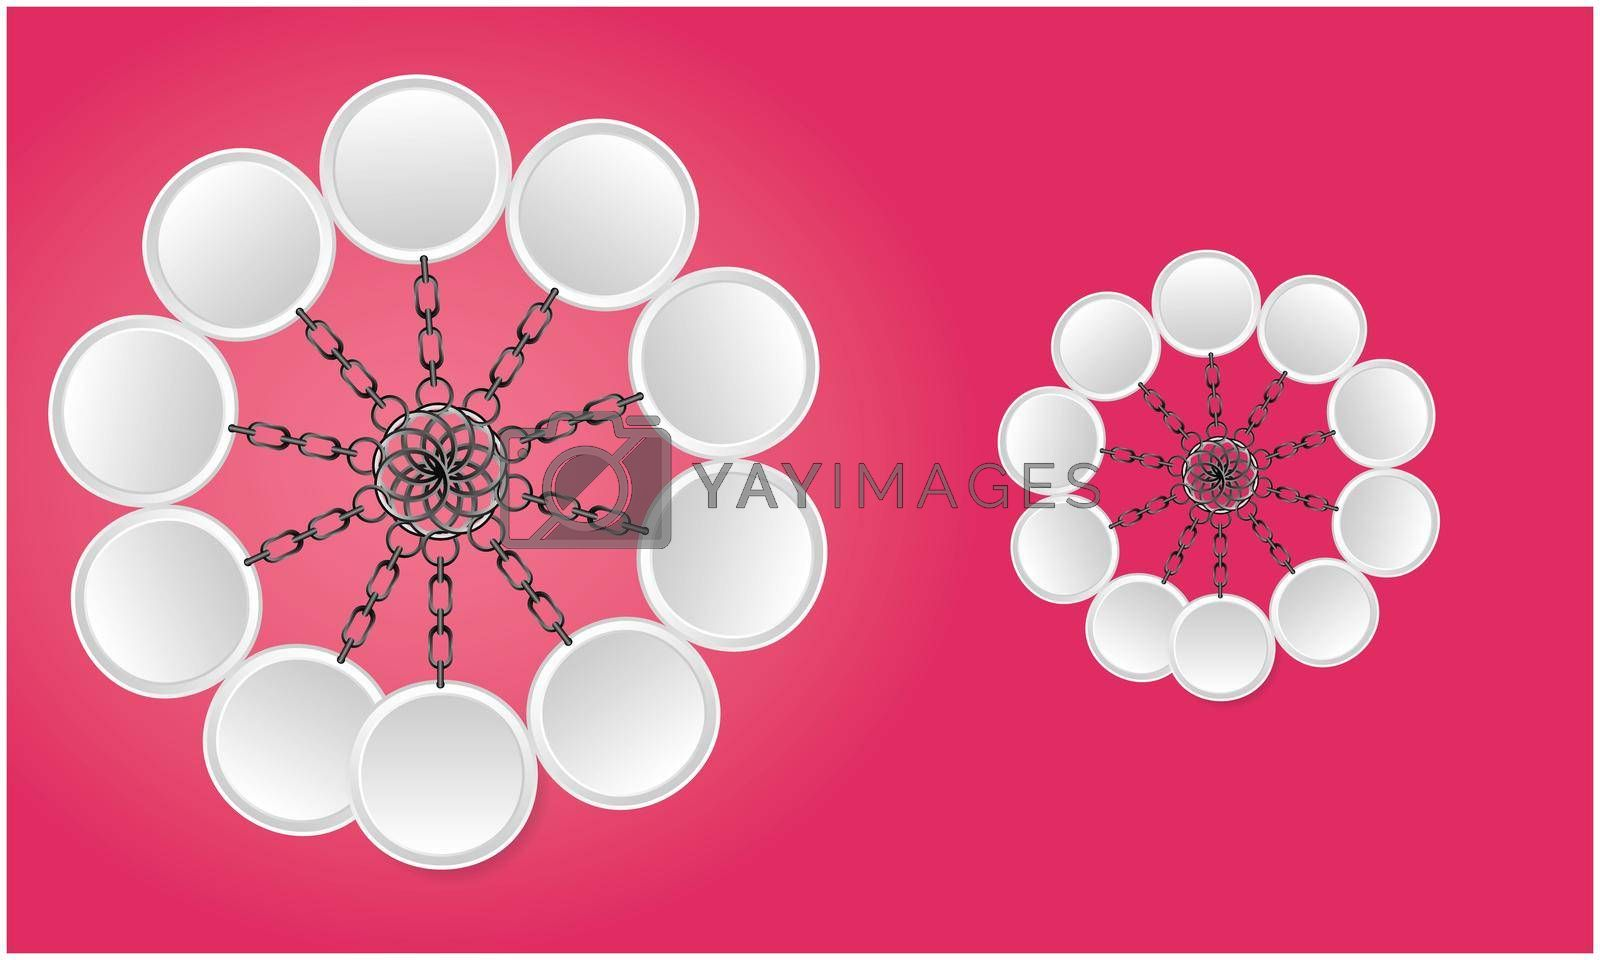 3d illustration of keyrings on abstract red background